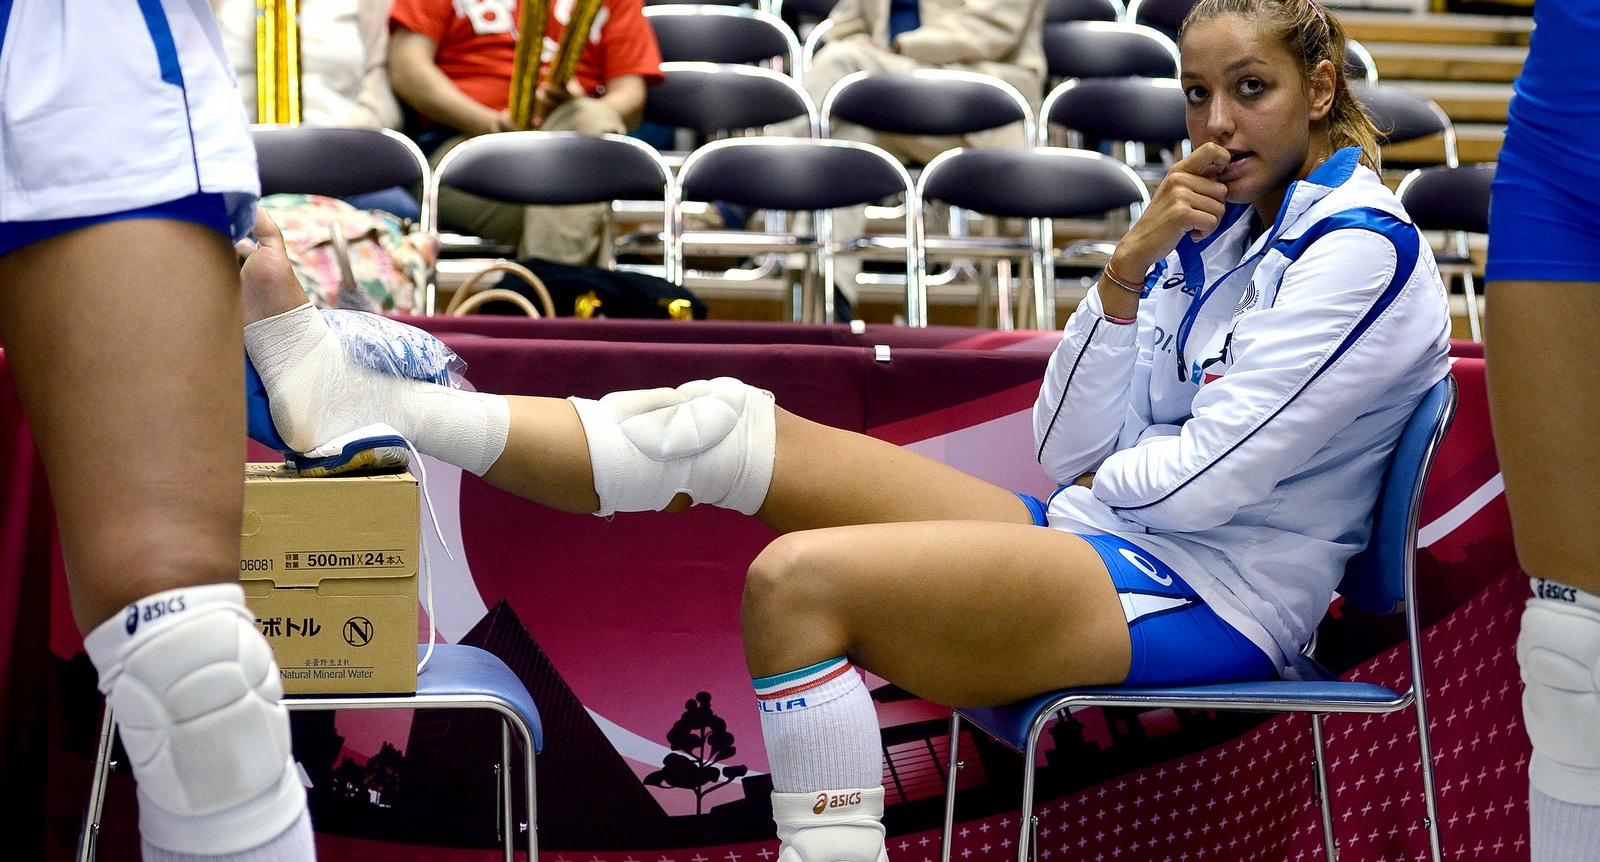 Common Volleyball Injuries and Prevention